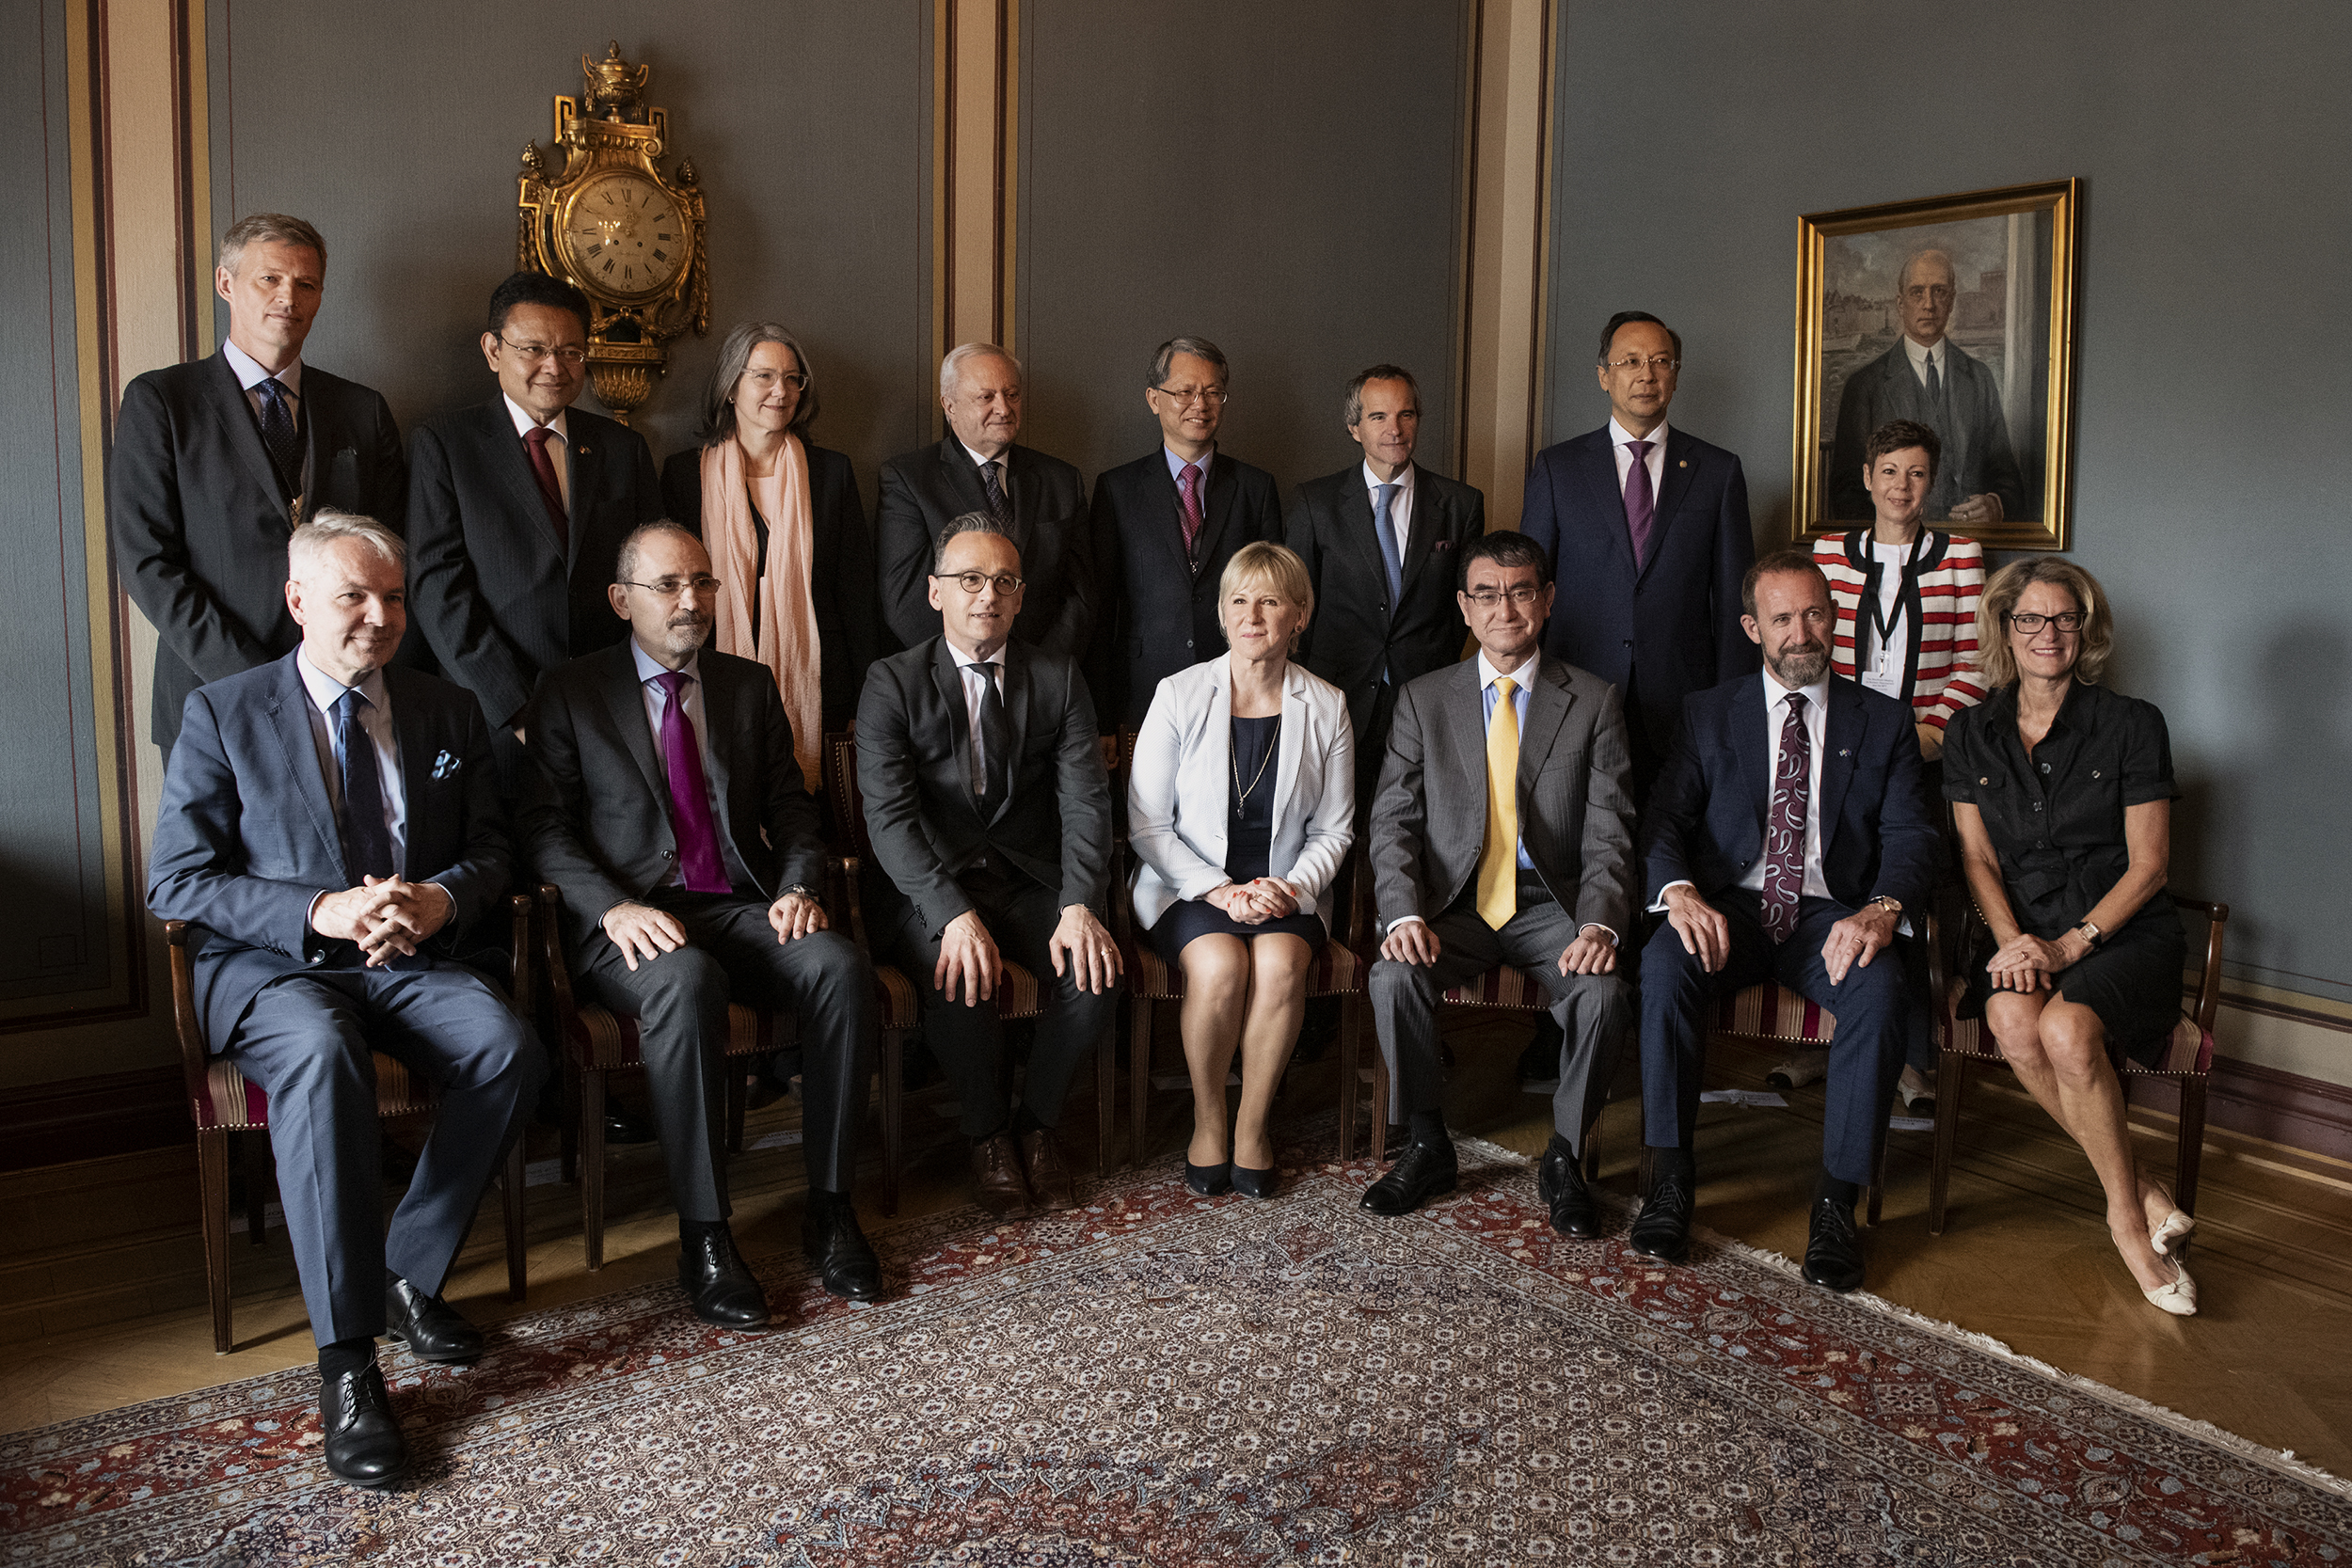 Participants of the Stockholm Ministerial Meeting on Nuclear Disarmament and the Non-Proliferation Treaty on 11 June, 2019